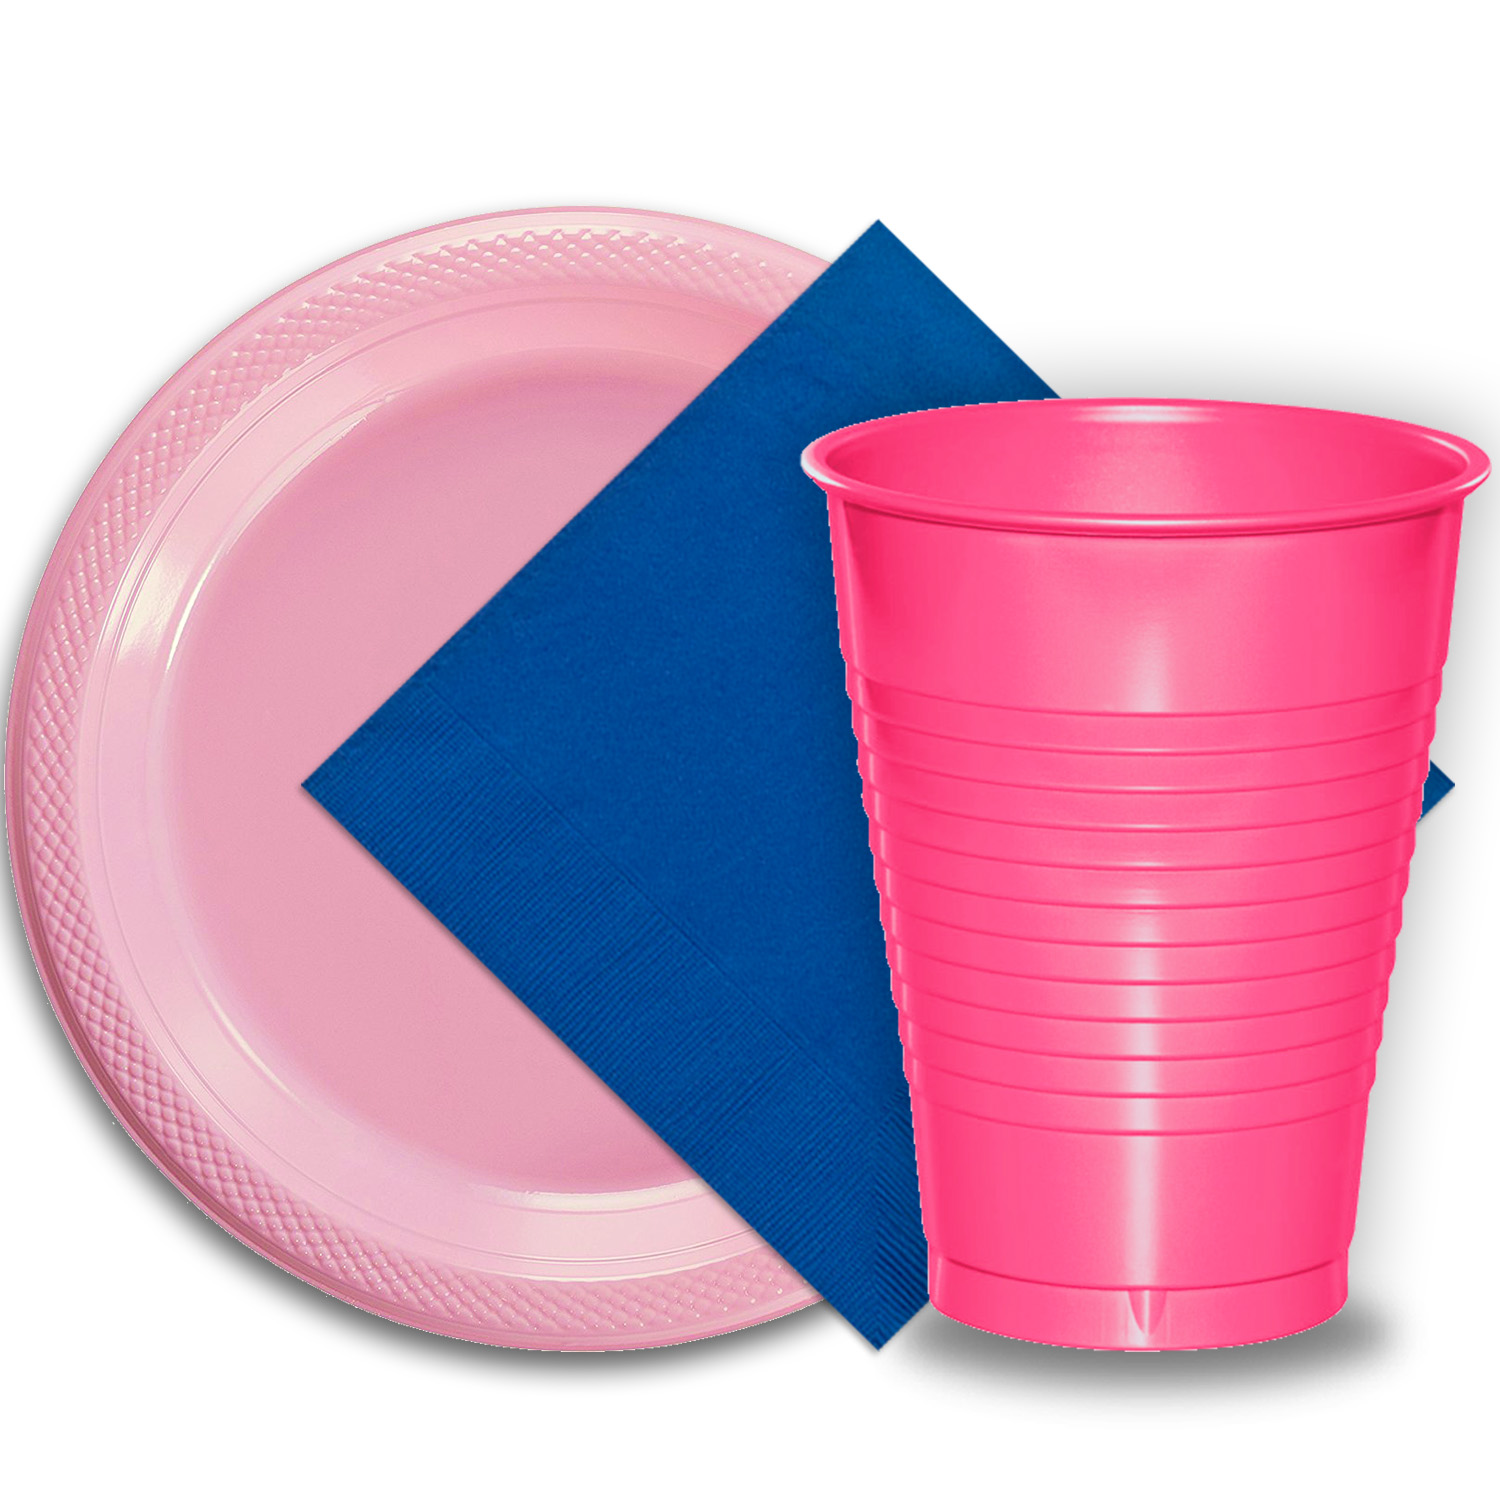 "50 Pink Plastic Plates (9""), 50 Hot Pink Plastic Cups (12 oz.), and 50 Dark Blue Paper Napkins, Dazzelling Colored Disposable Party Supplies Tableware Set for Fifty Guests."